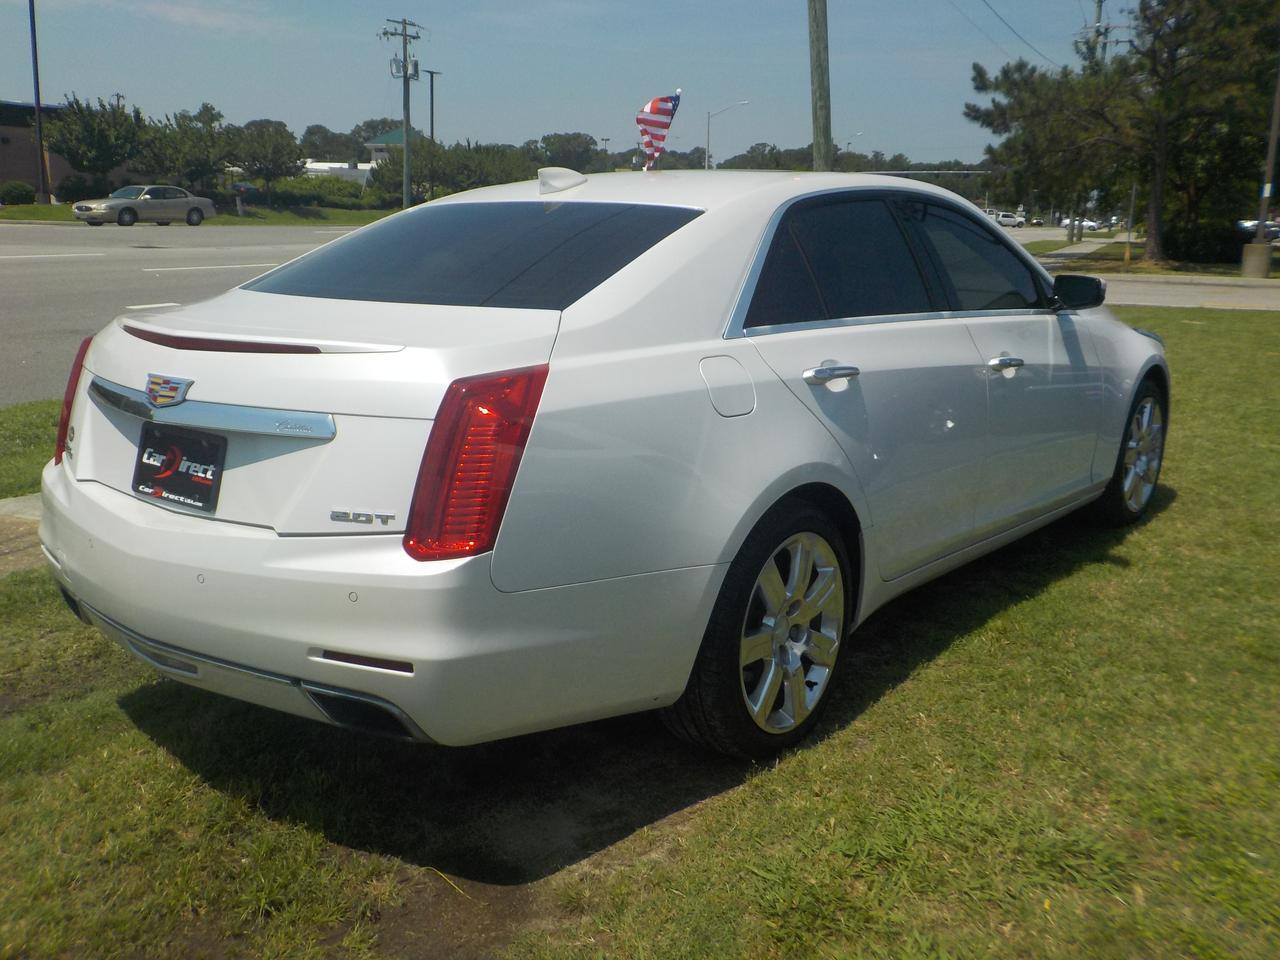 2015 CADILLAC CTS PREMIUM AWD, WARRANTY, BOSE SOUND SYSTEM, TINTED WINDOWS, REMOTE START, NAVIGATION, BACKUP CAMERA! Virginia Beach VA